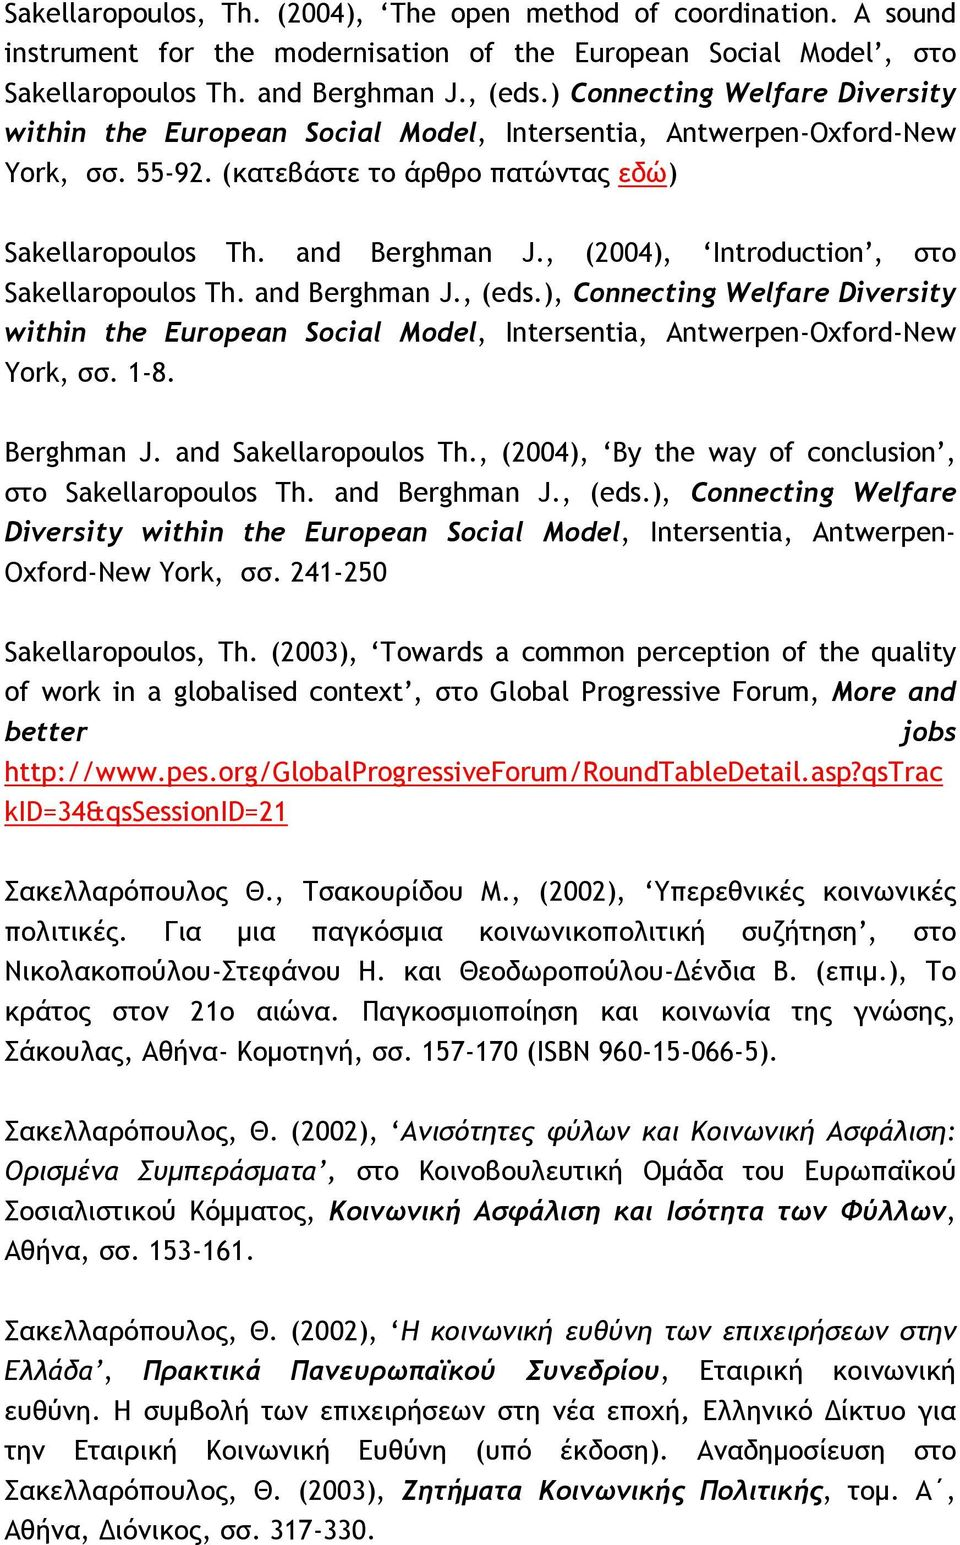 , (2004), Introduction, στο Sakellaropoulos Th. and Berghman J., (eds.), Connecting Welfare Diversity within the European Social Model, Intersentia, Antwerpen-Oxford-New York, σσ. 1-8. Berghman J. and Sakellaropoulos Th.